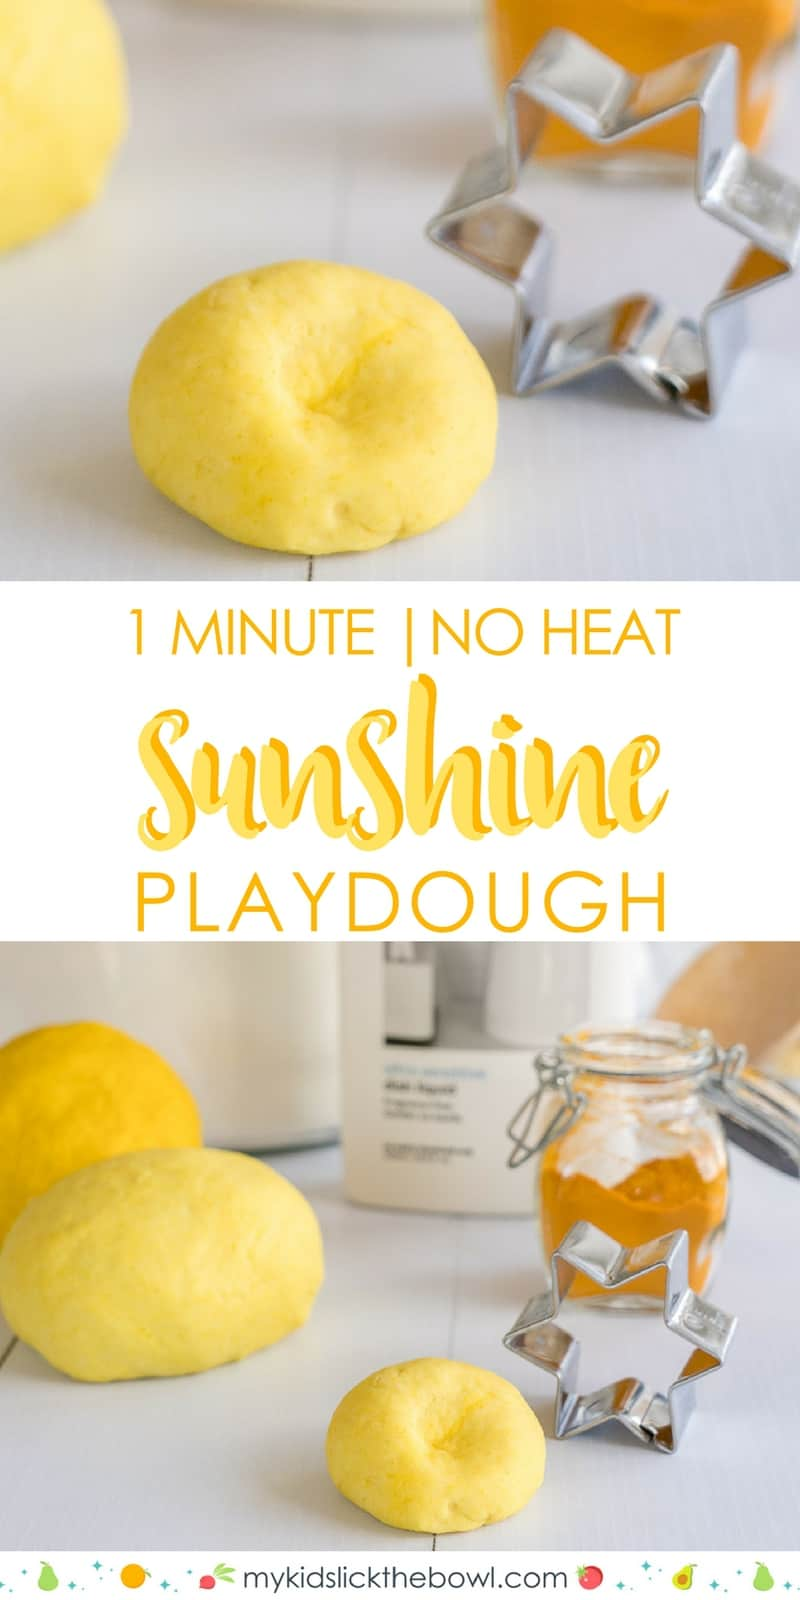 No Cook One Minute Playdough 3 Ingredients